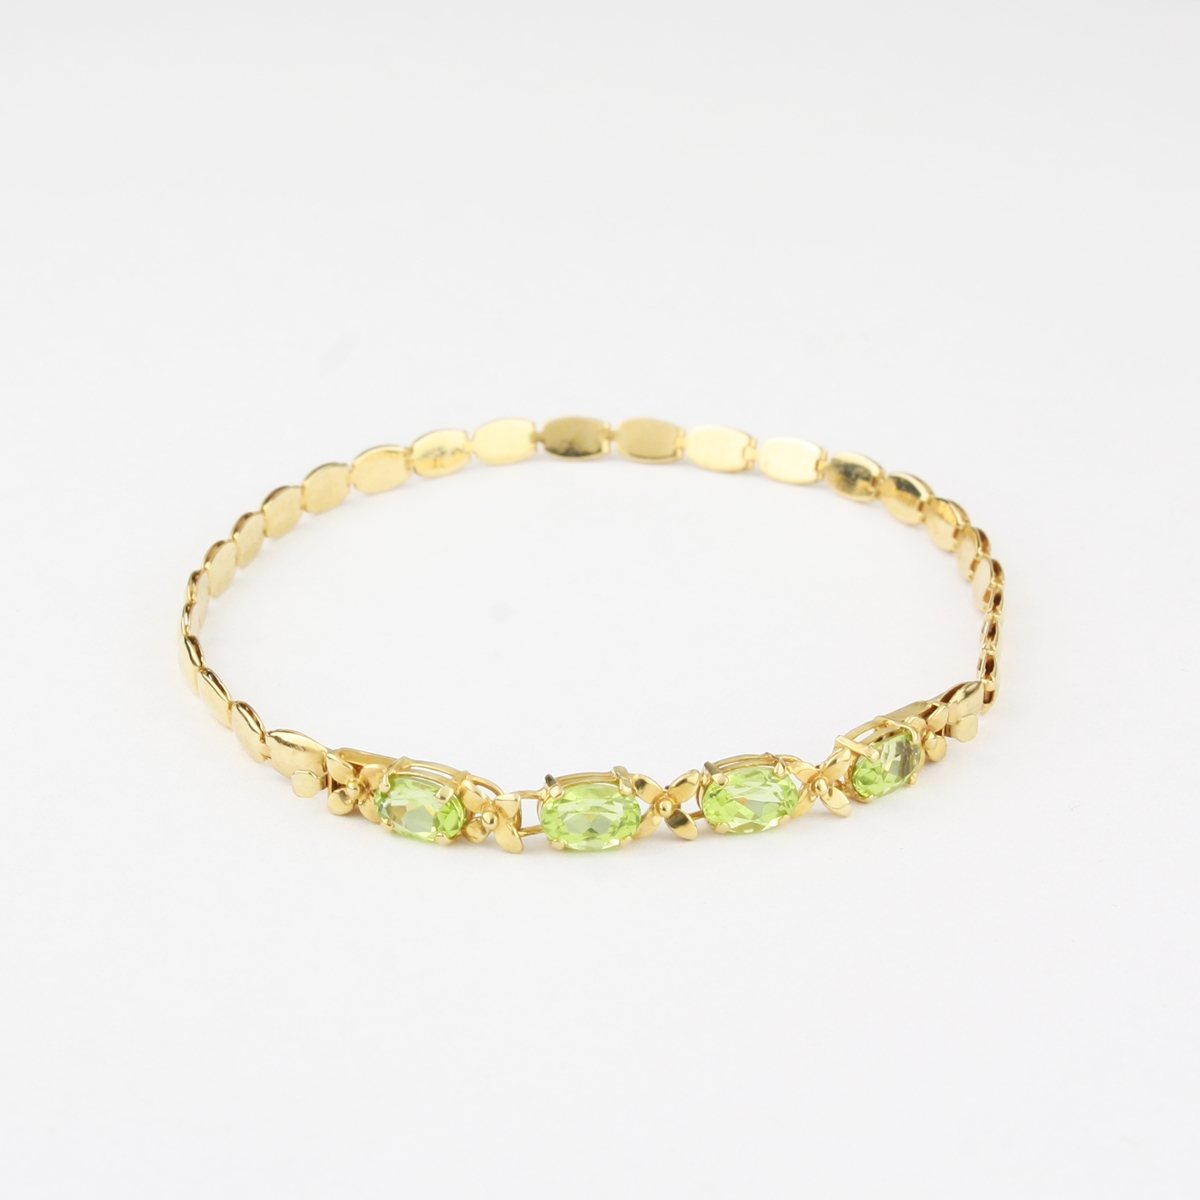 Pre Owned 14 Karat Yellow Gold Colored Gemstones